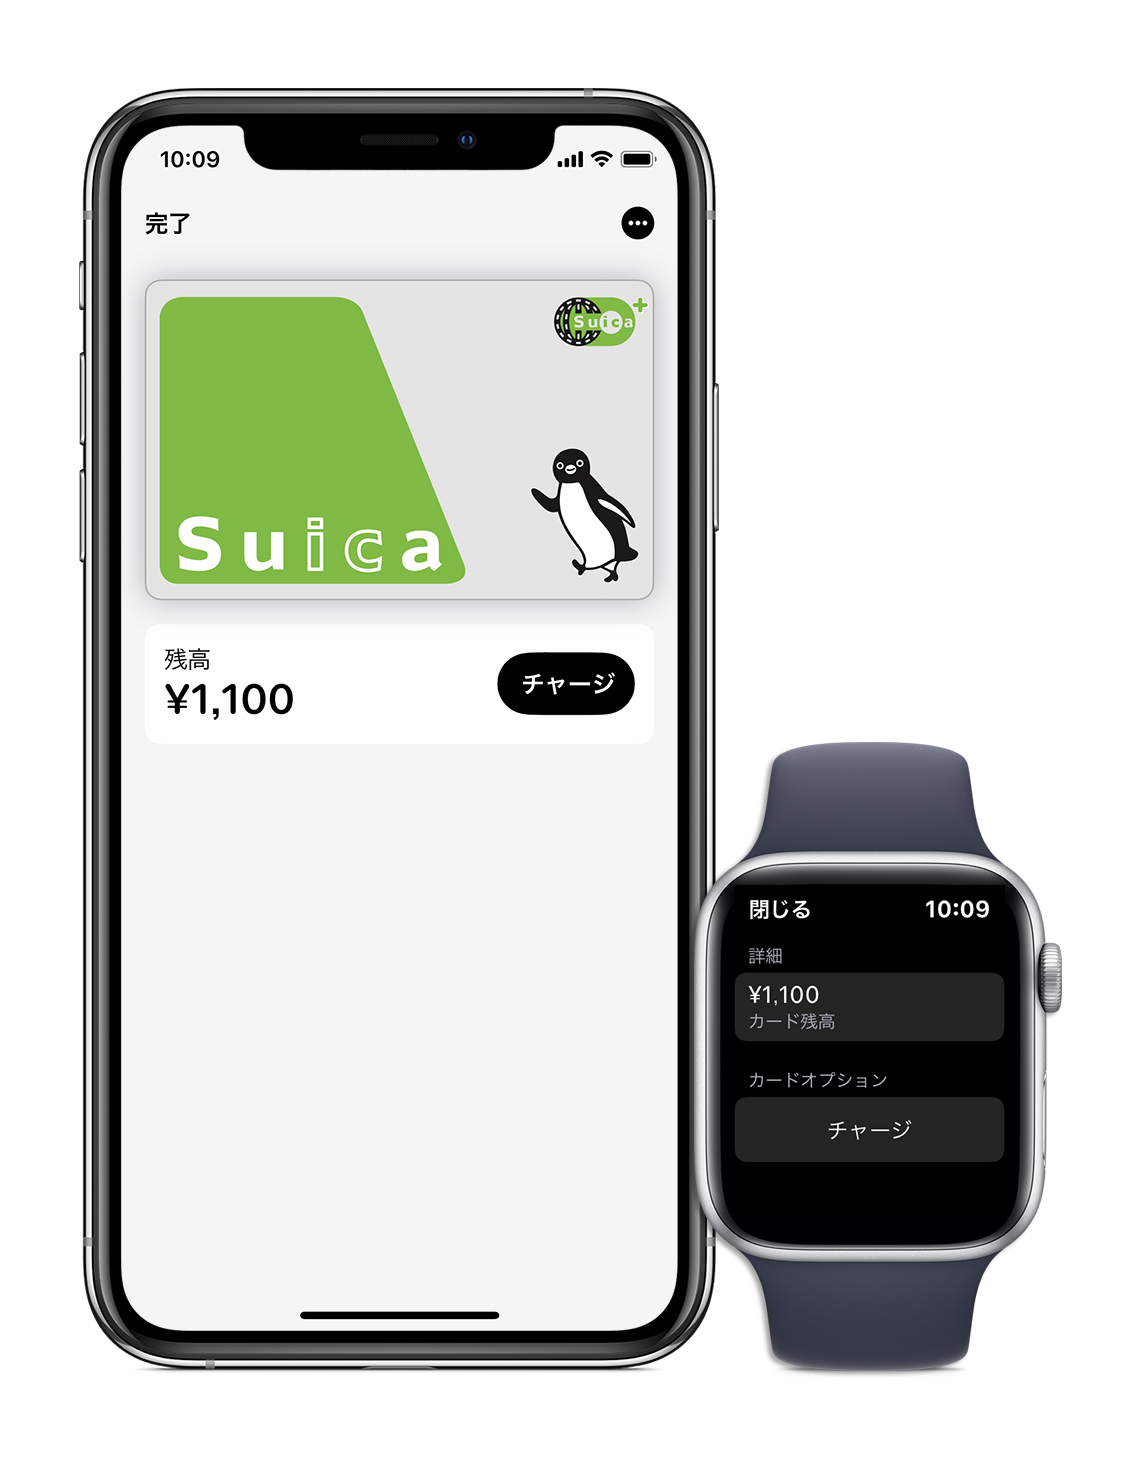 Suica current balance on iPhone and Apple Watch